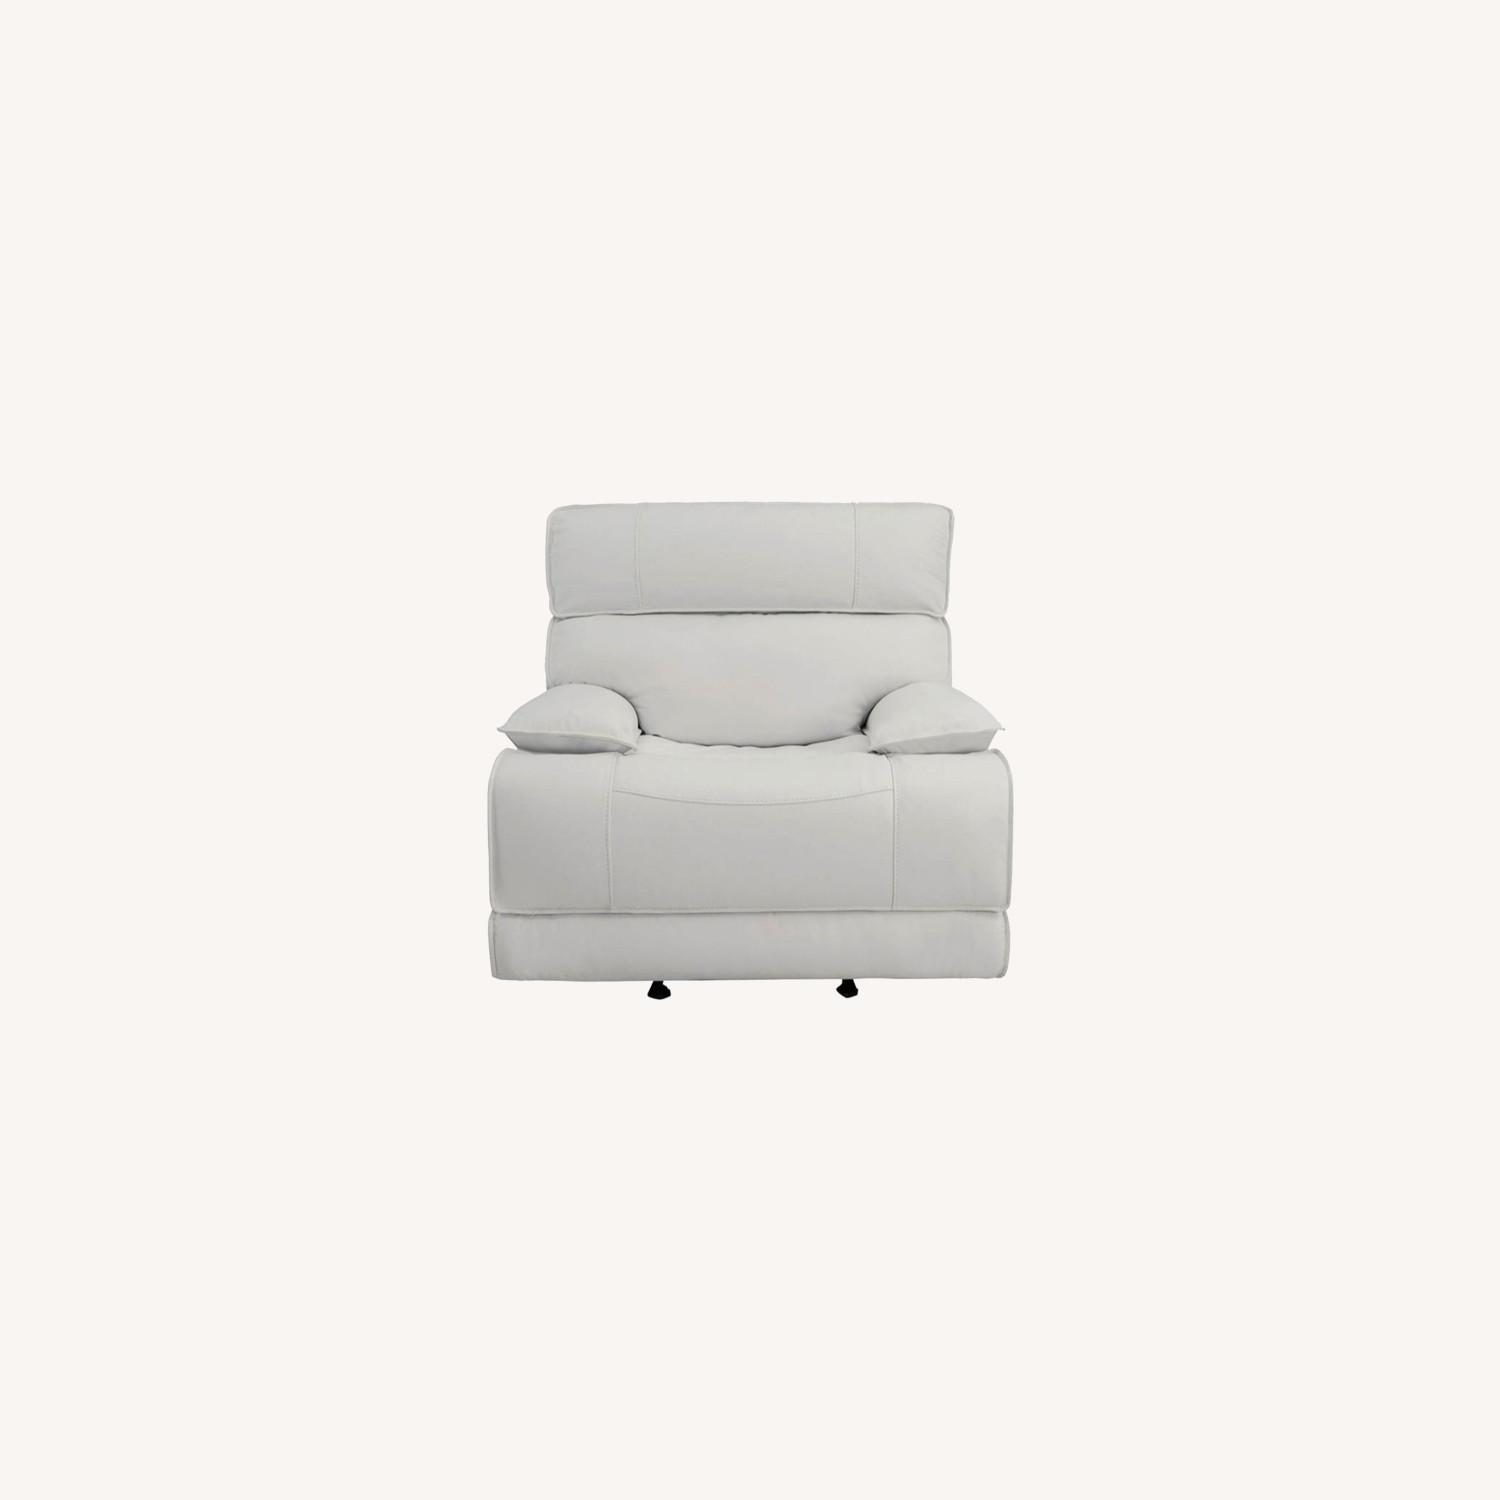 Power Glider Recliner Upholstered In White Leather - image-9